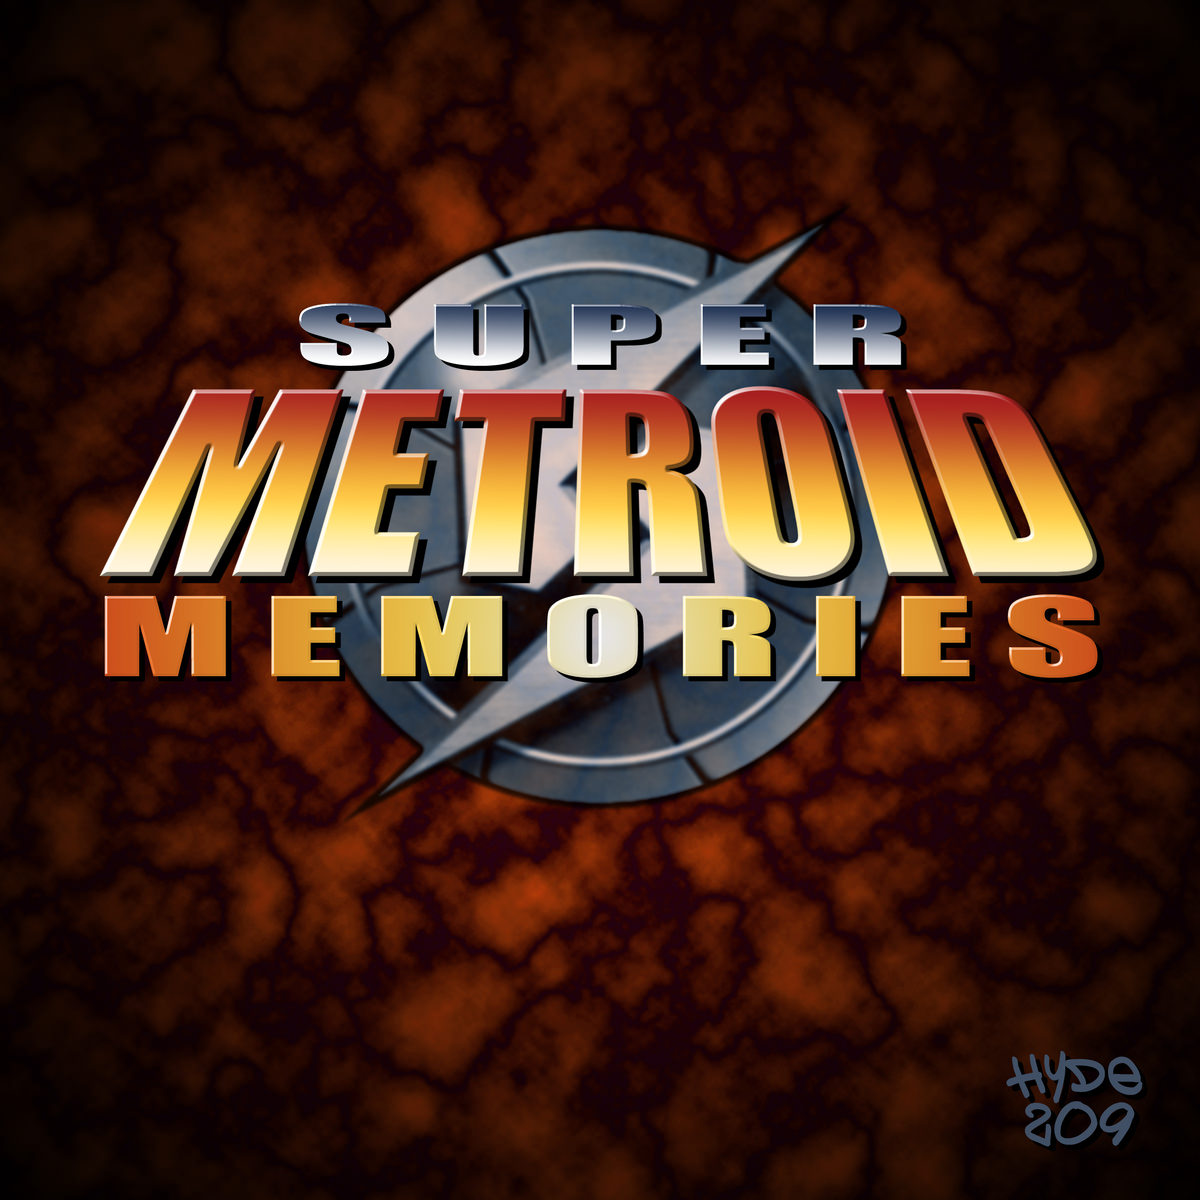 Hyde209 - Super Metroid Memories